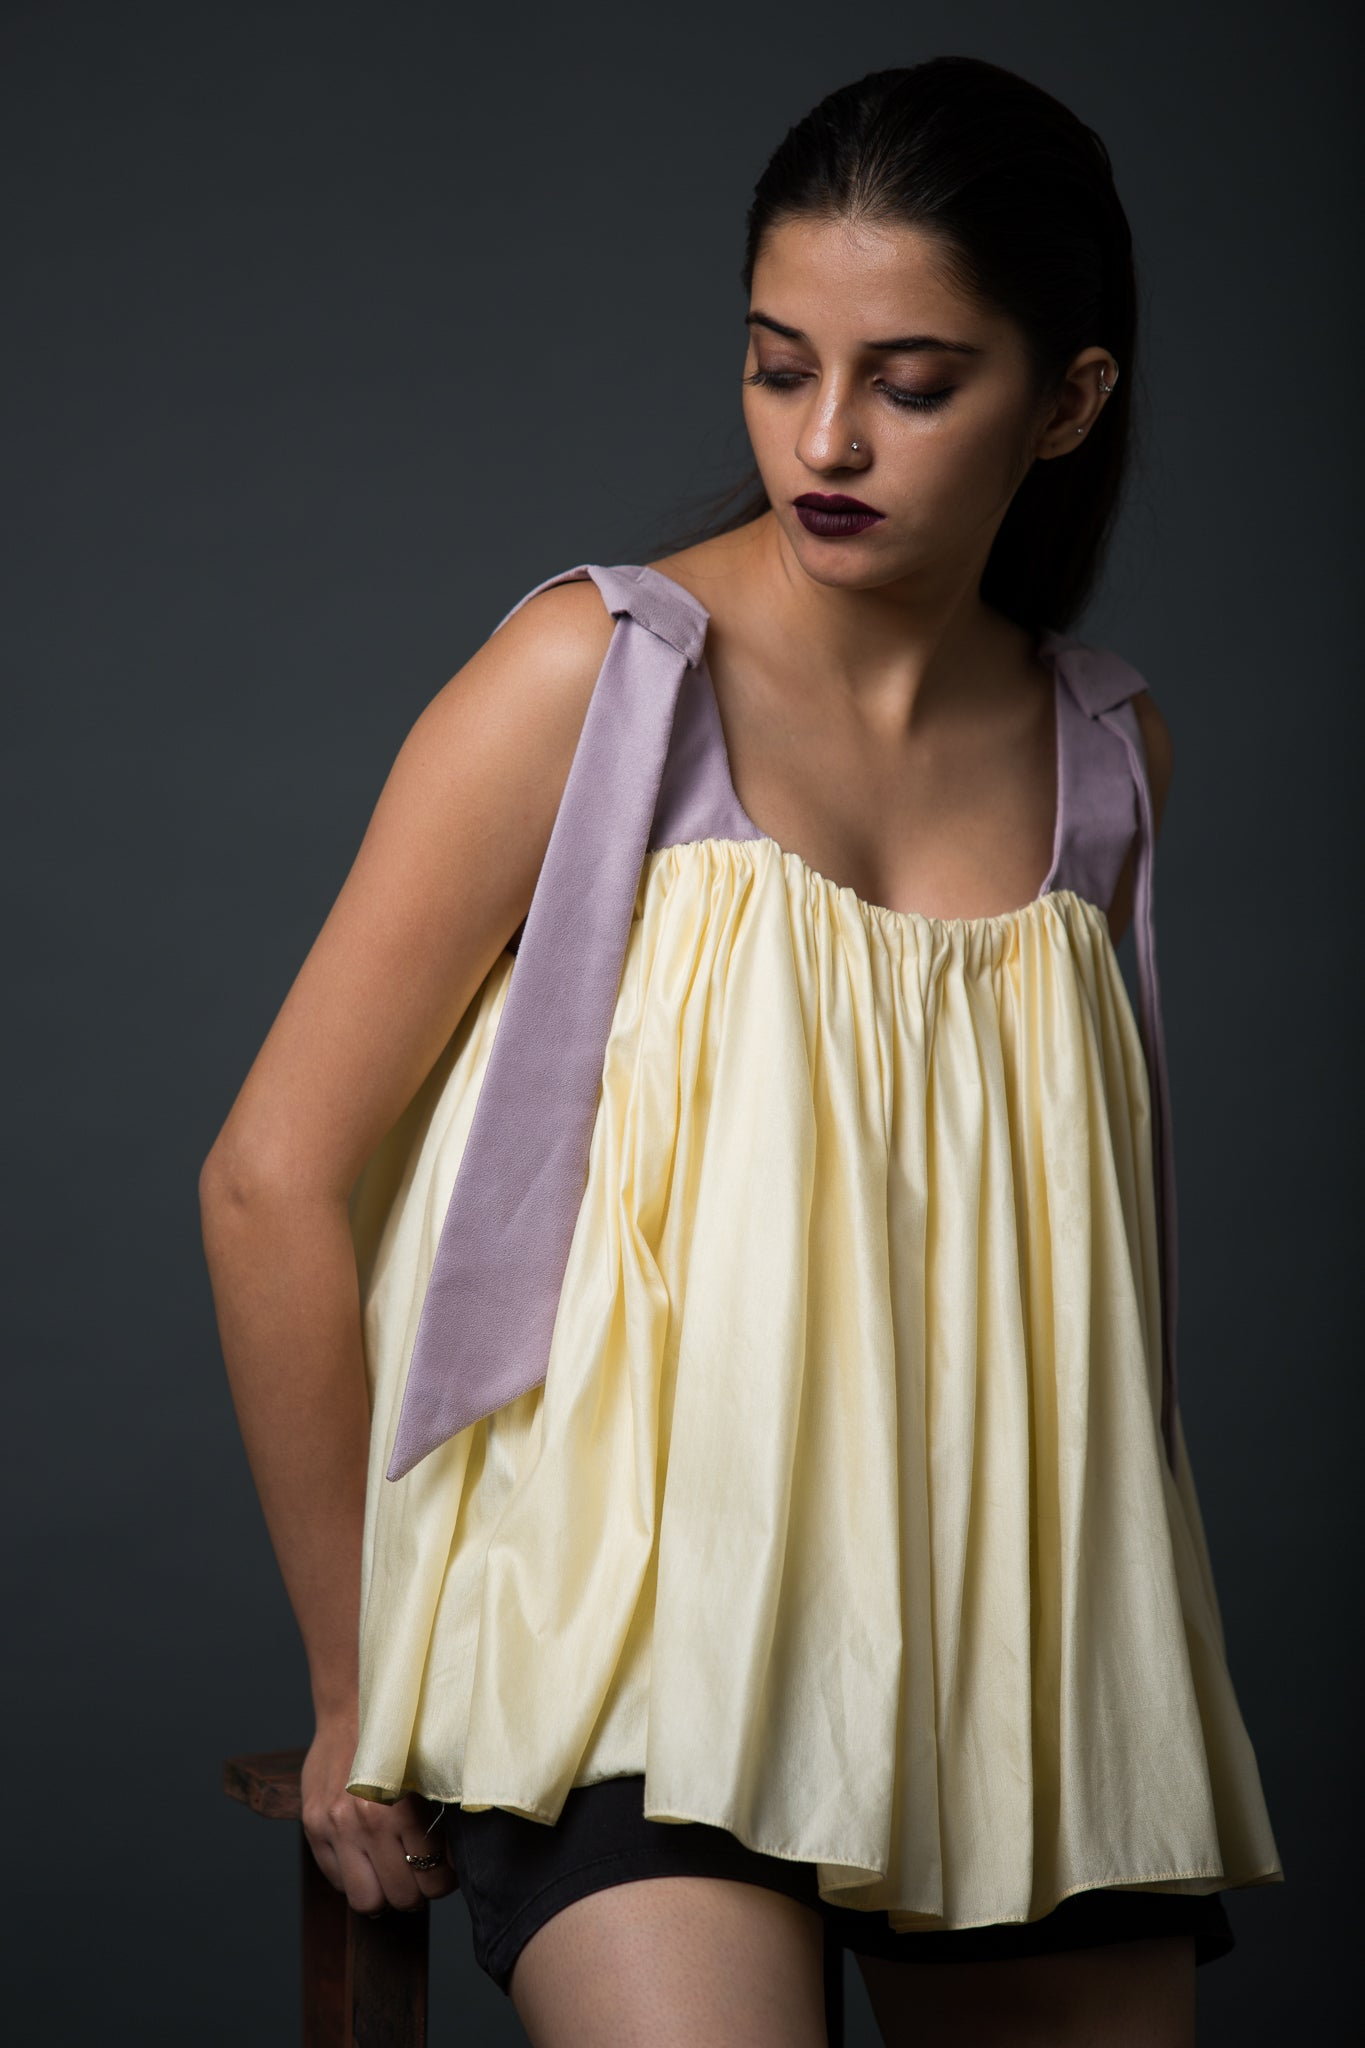 Liberta - Frilled top with faux suede straps